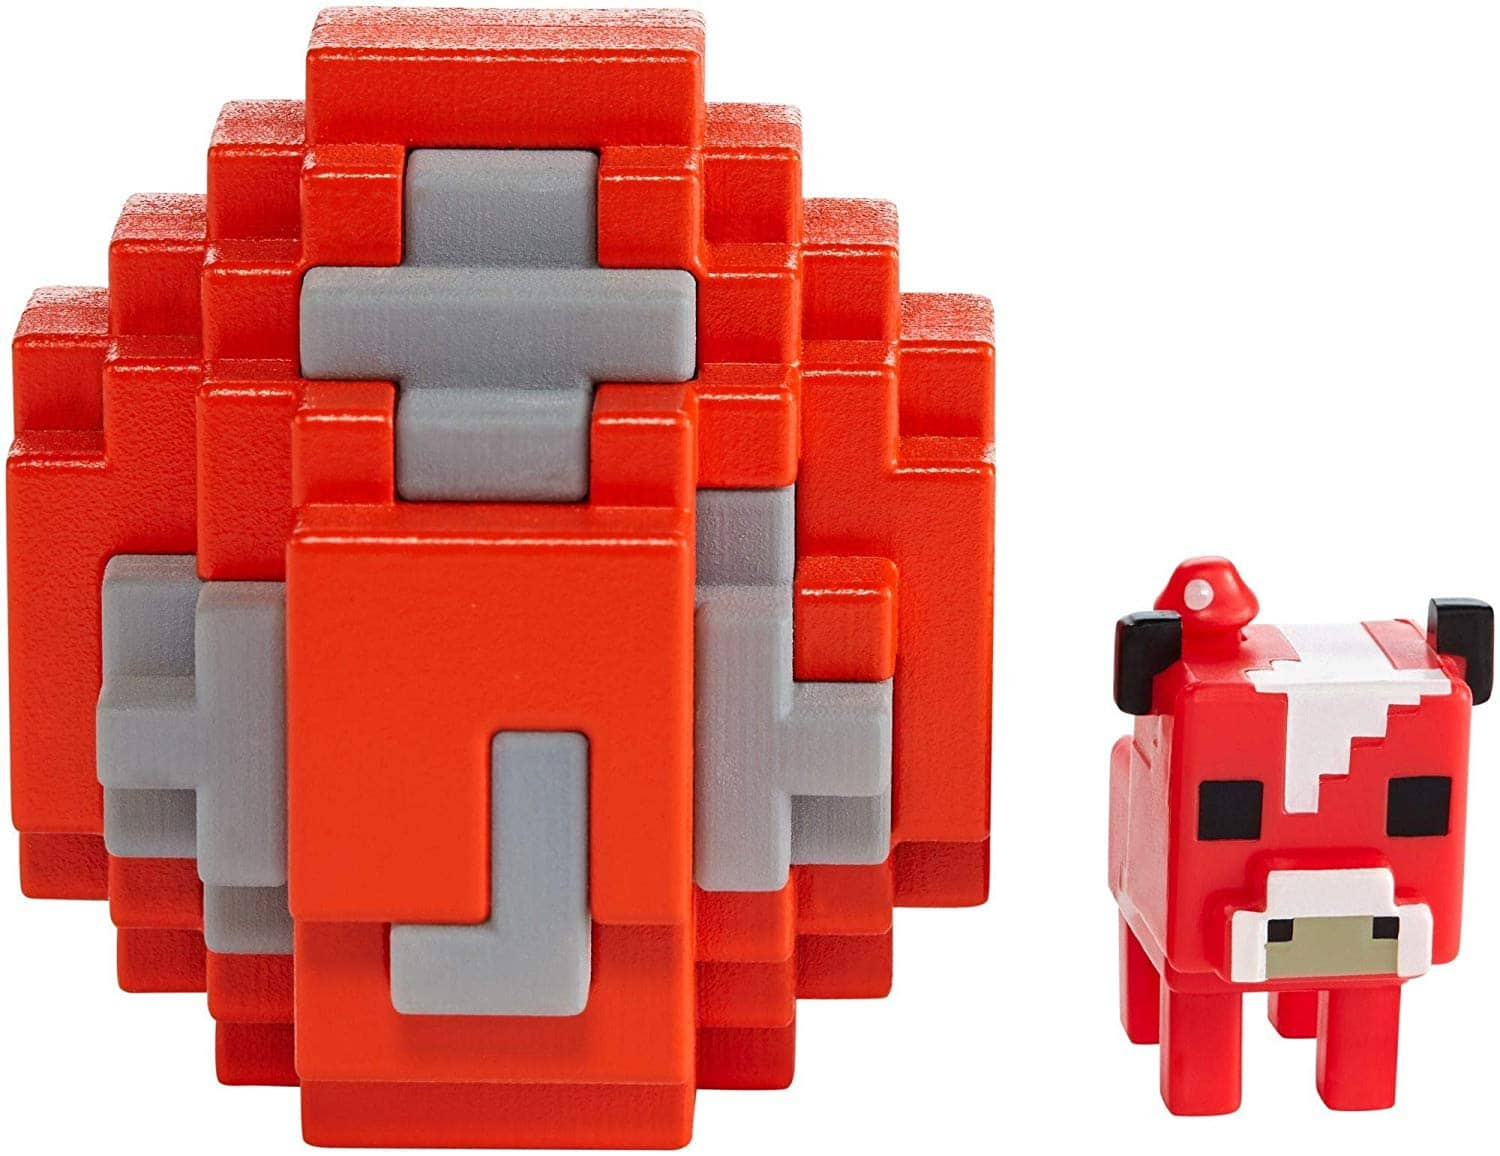 Minecraft Spawn Egg Mini Figures, Styles May Vary $1.50